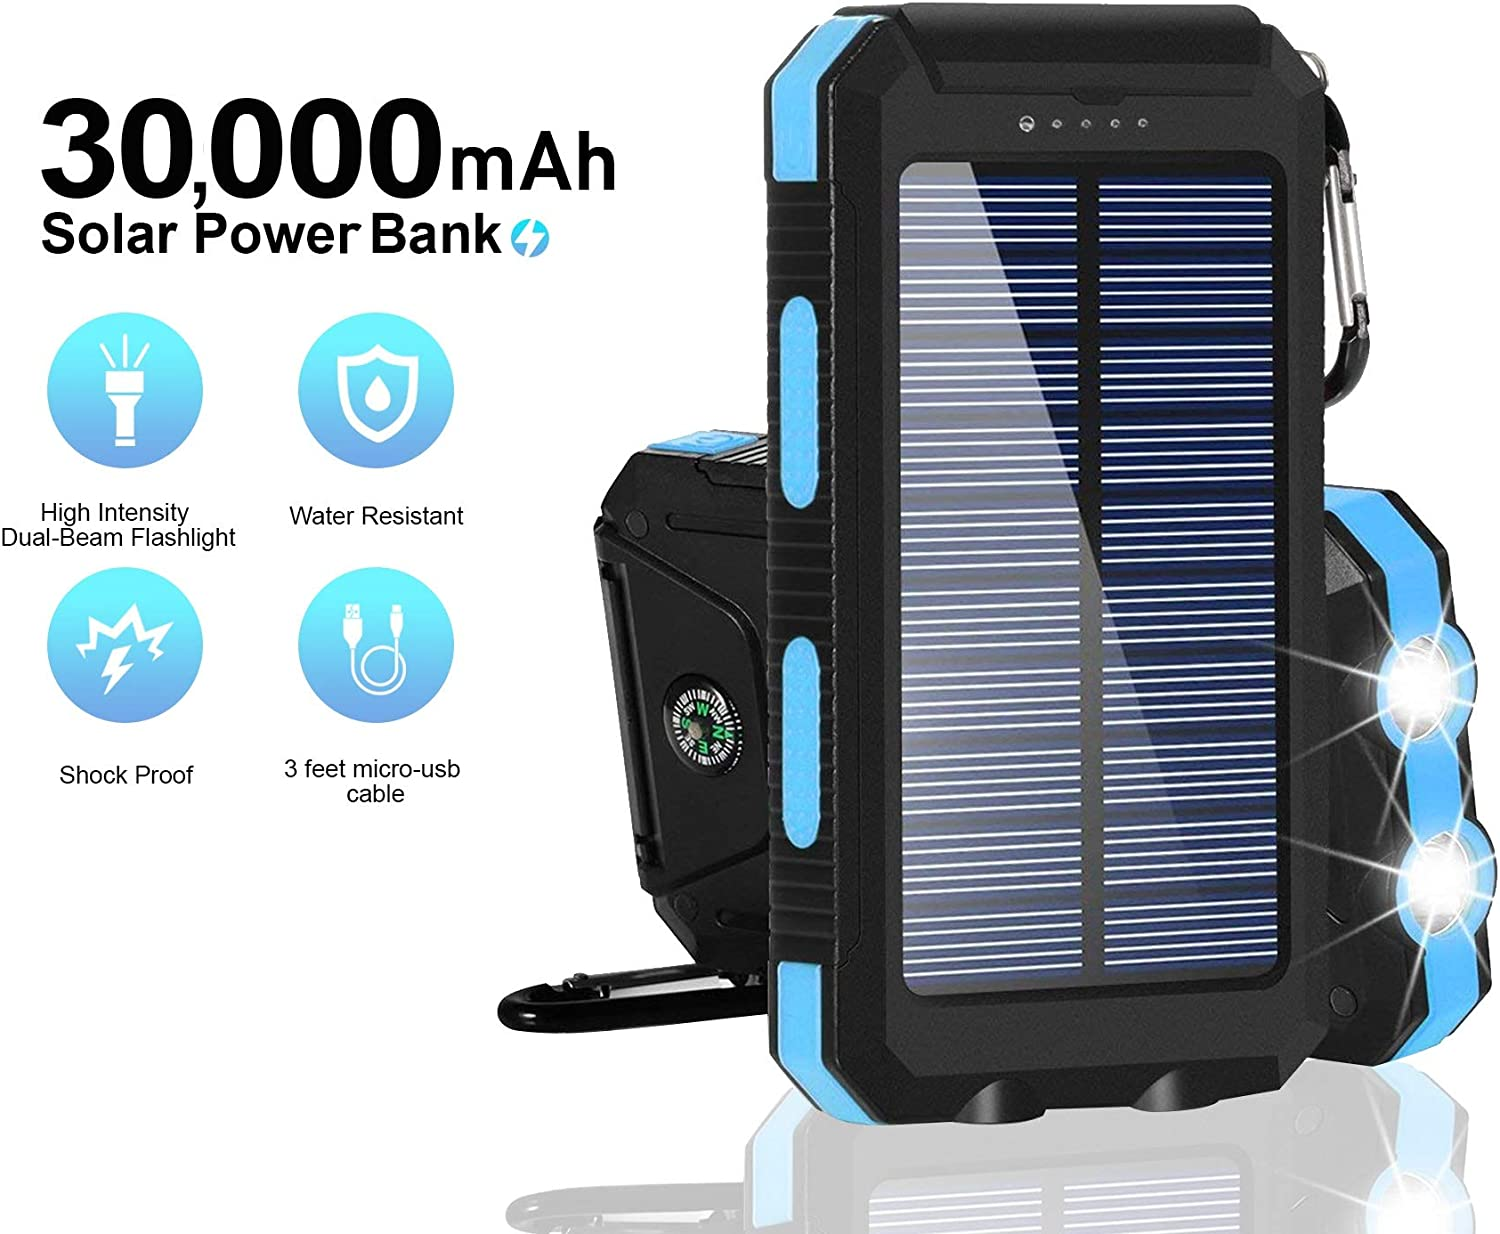 Solar Chargers 30,000mAh, Dualpow Portable Dual USB Solar Battery Charger External Battery Pack Phone Charger Power Bank with Flashlight for Smartphones Tablet Camera (Orange/Black B) (Baby Blue)